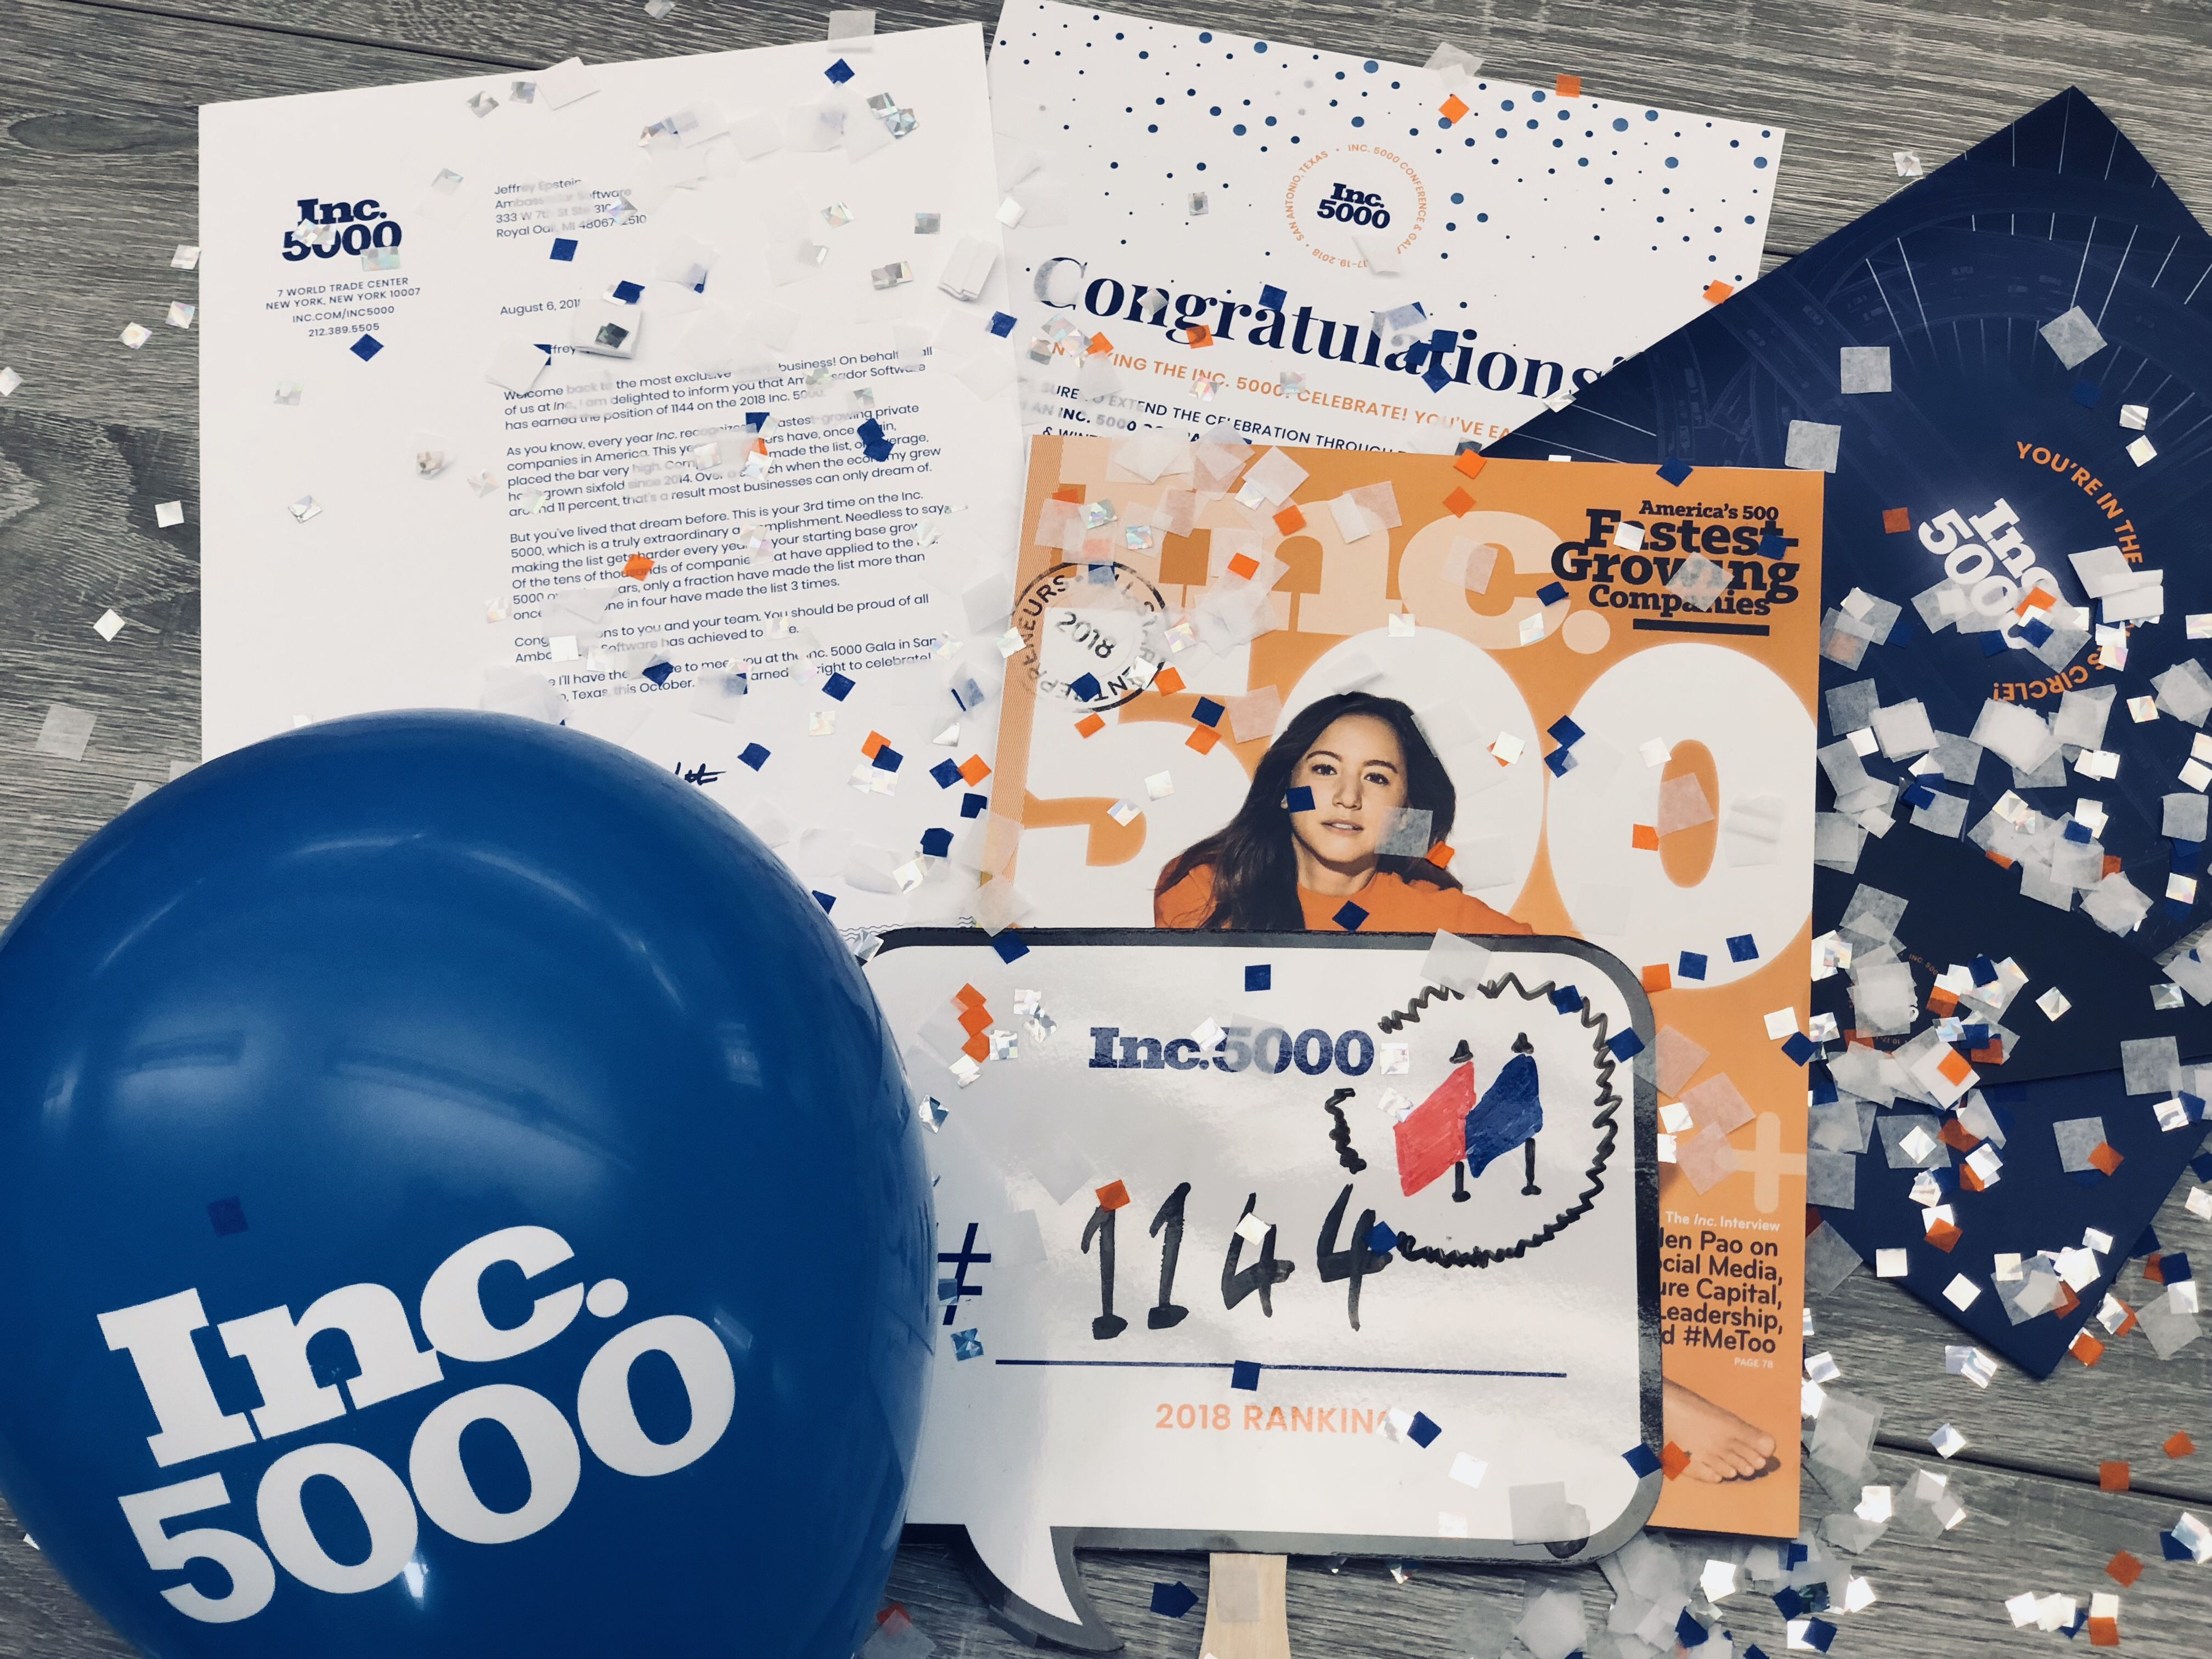 Ambassador Software Ranked on the Inc. 5000 for the 3rd Consecutive Year!